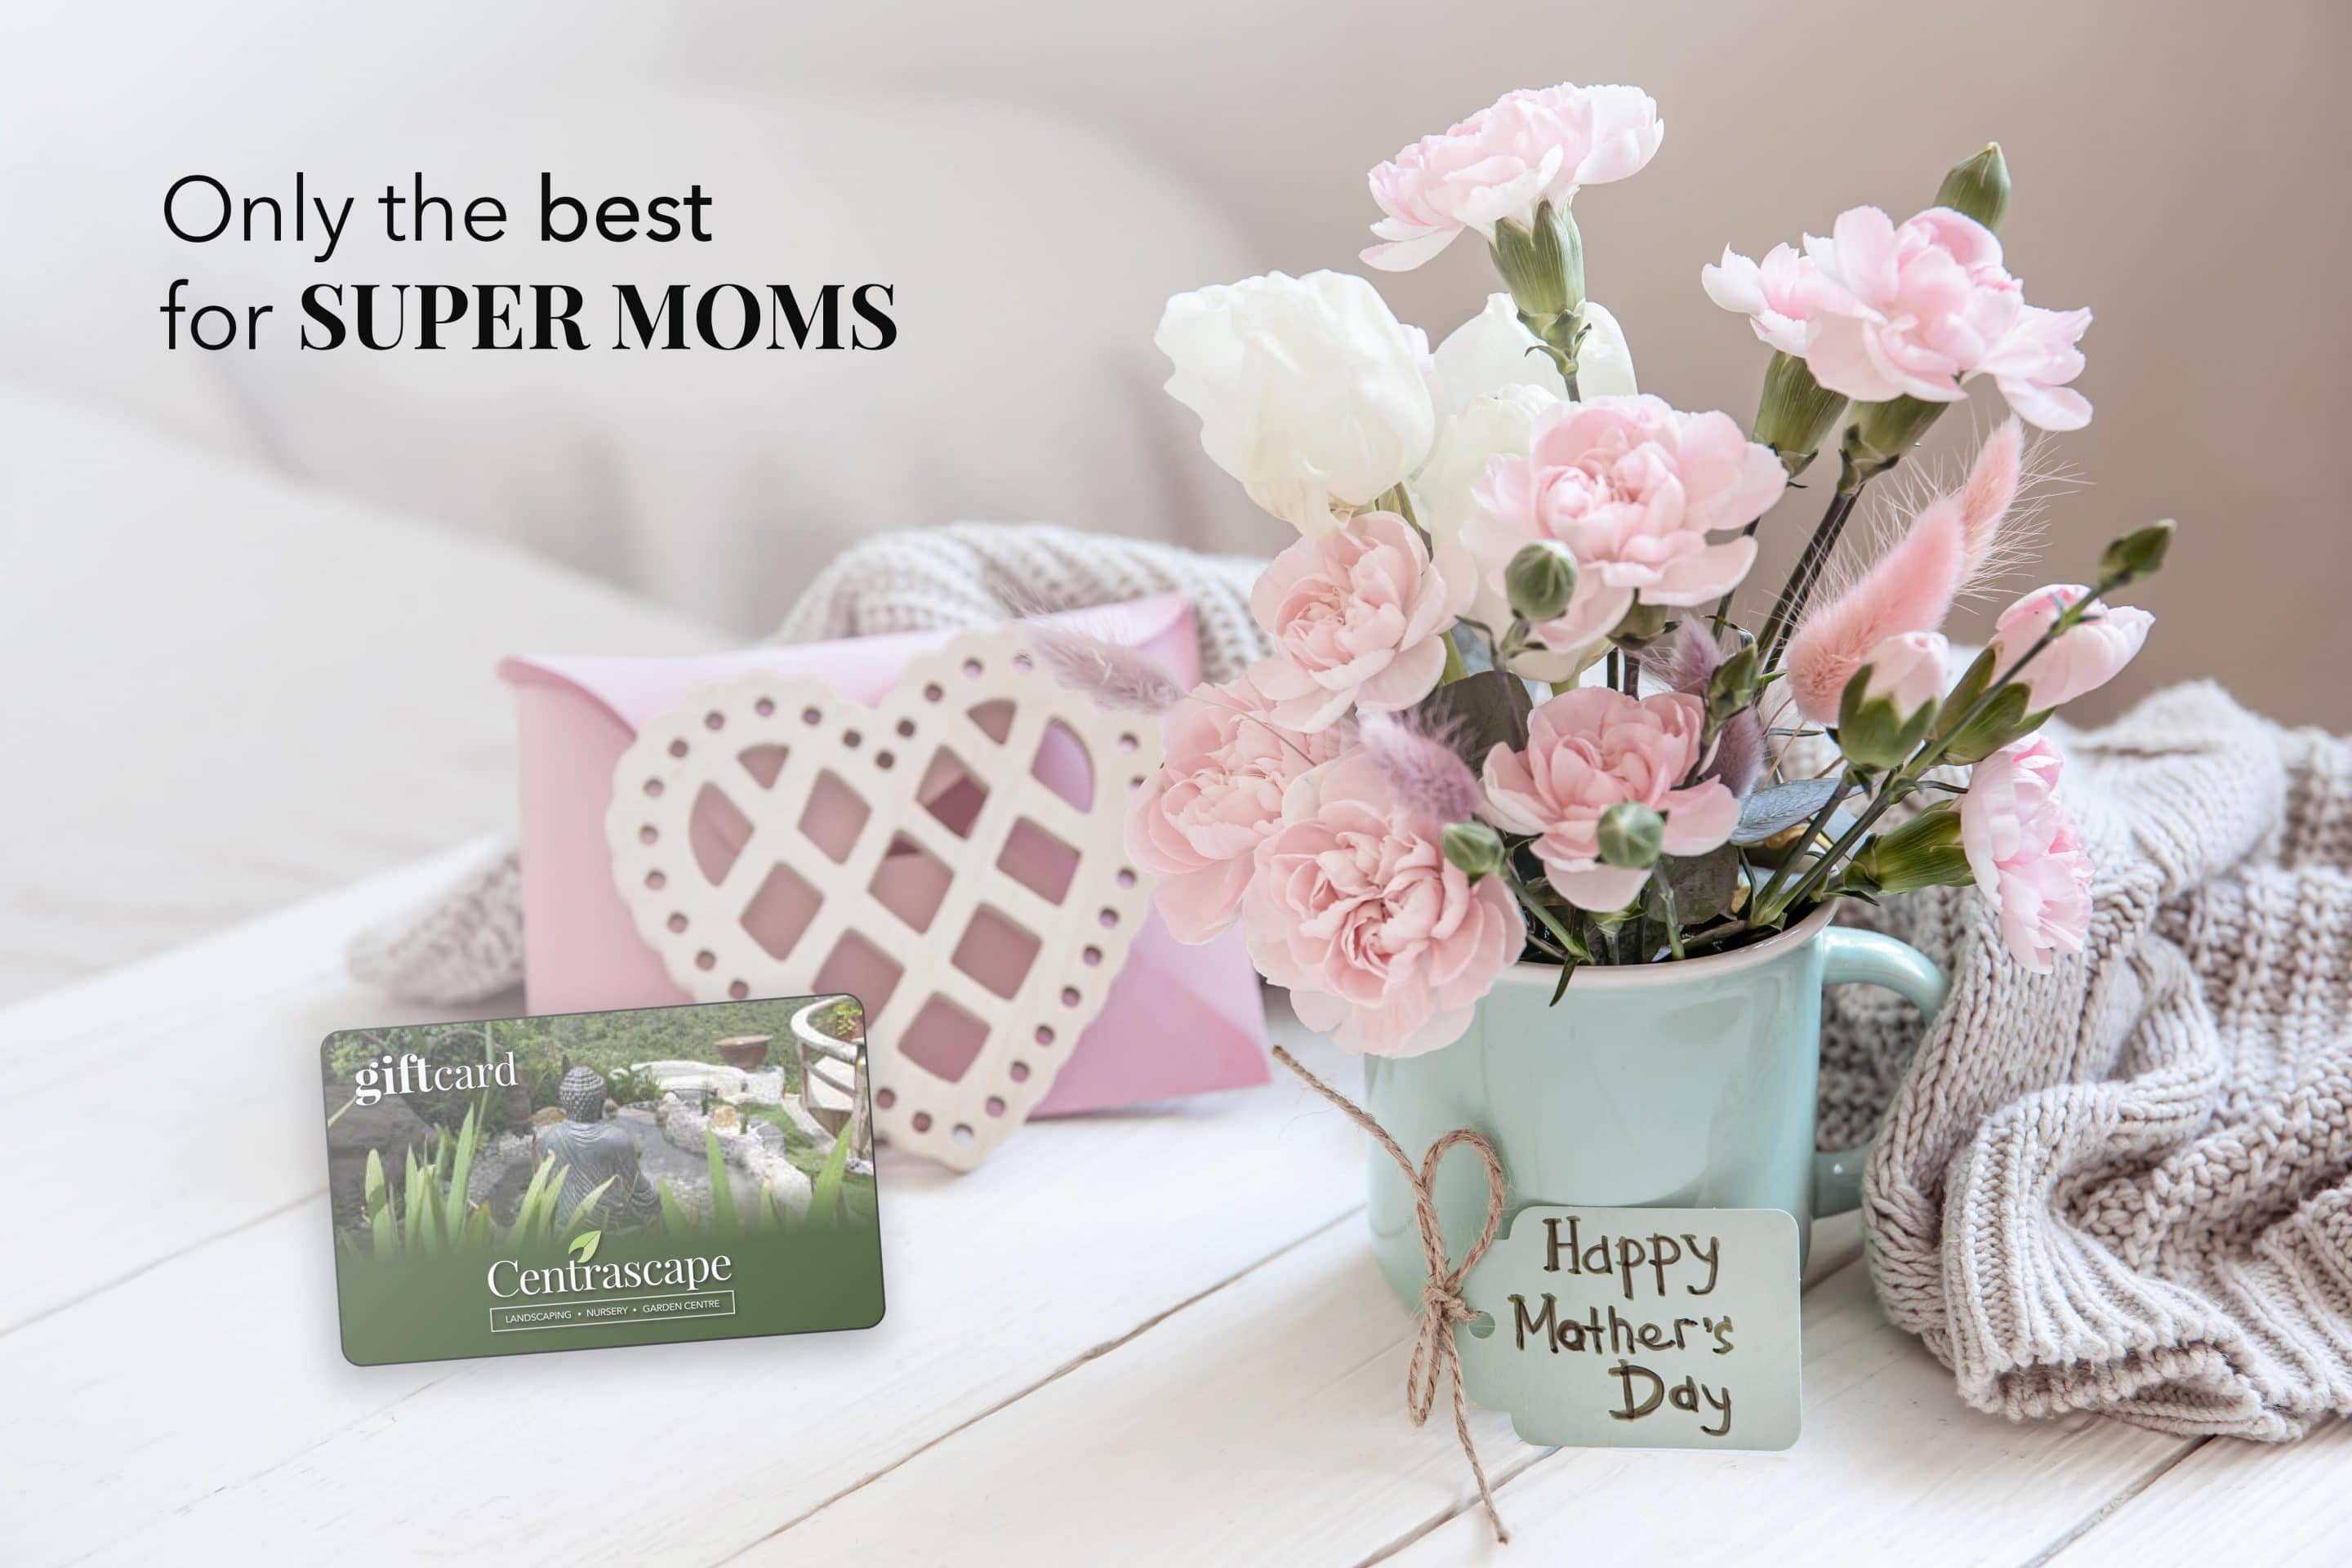 Centrascape Mothers' Day Gift Cards